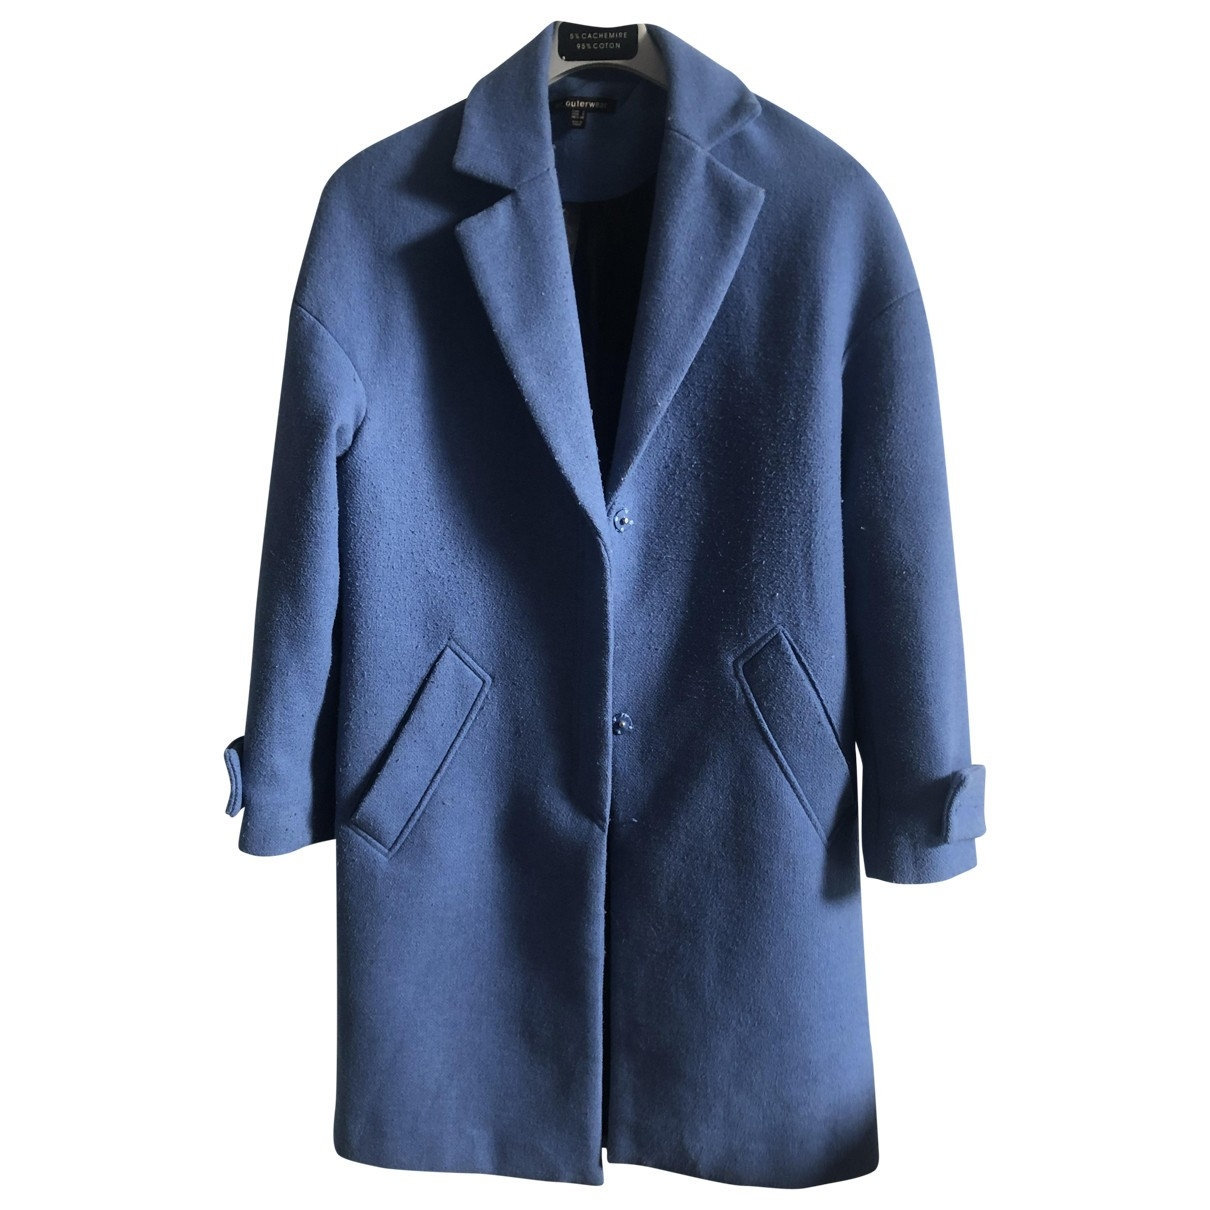 Zara \N Blue Cotton coat for Women 38 FR